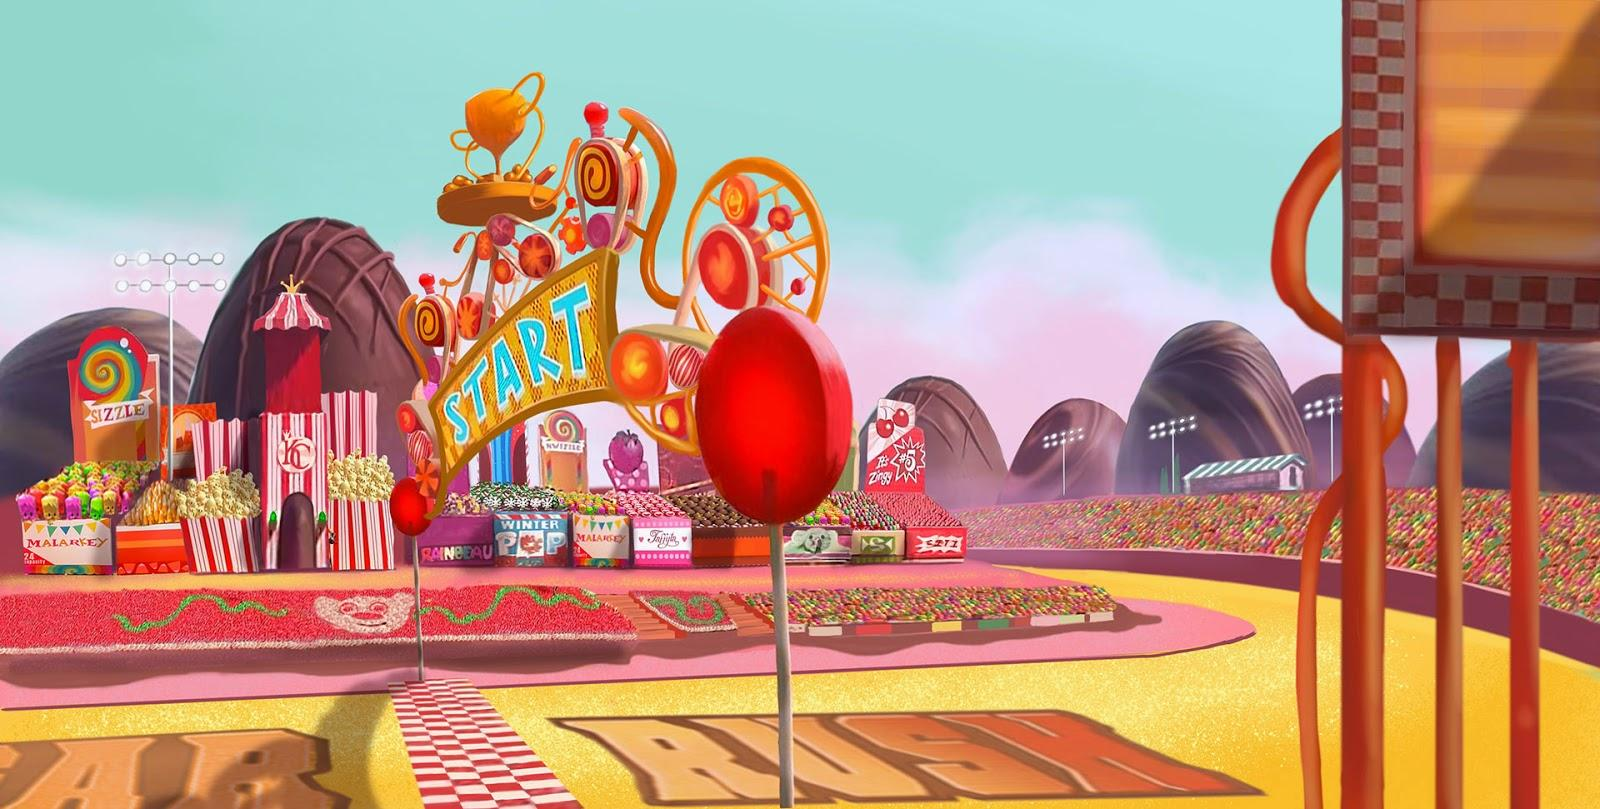 Wreck It Ralph (Cancelled Kingdom Hearts game concept art)